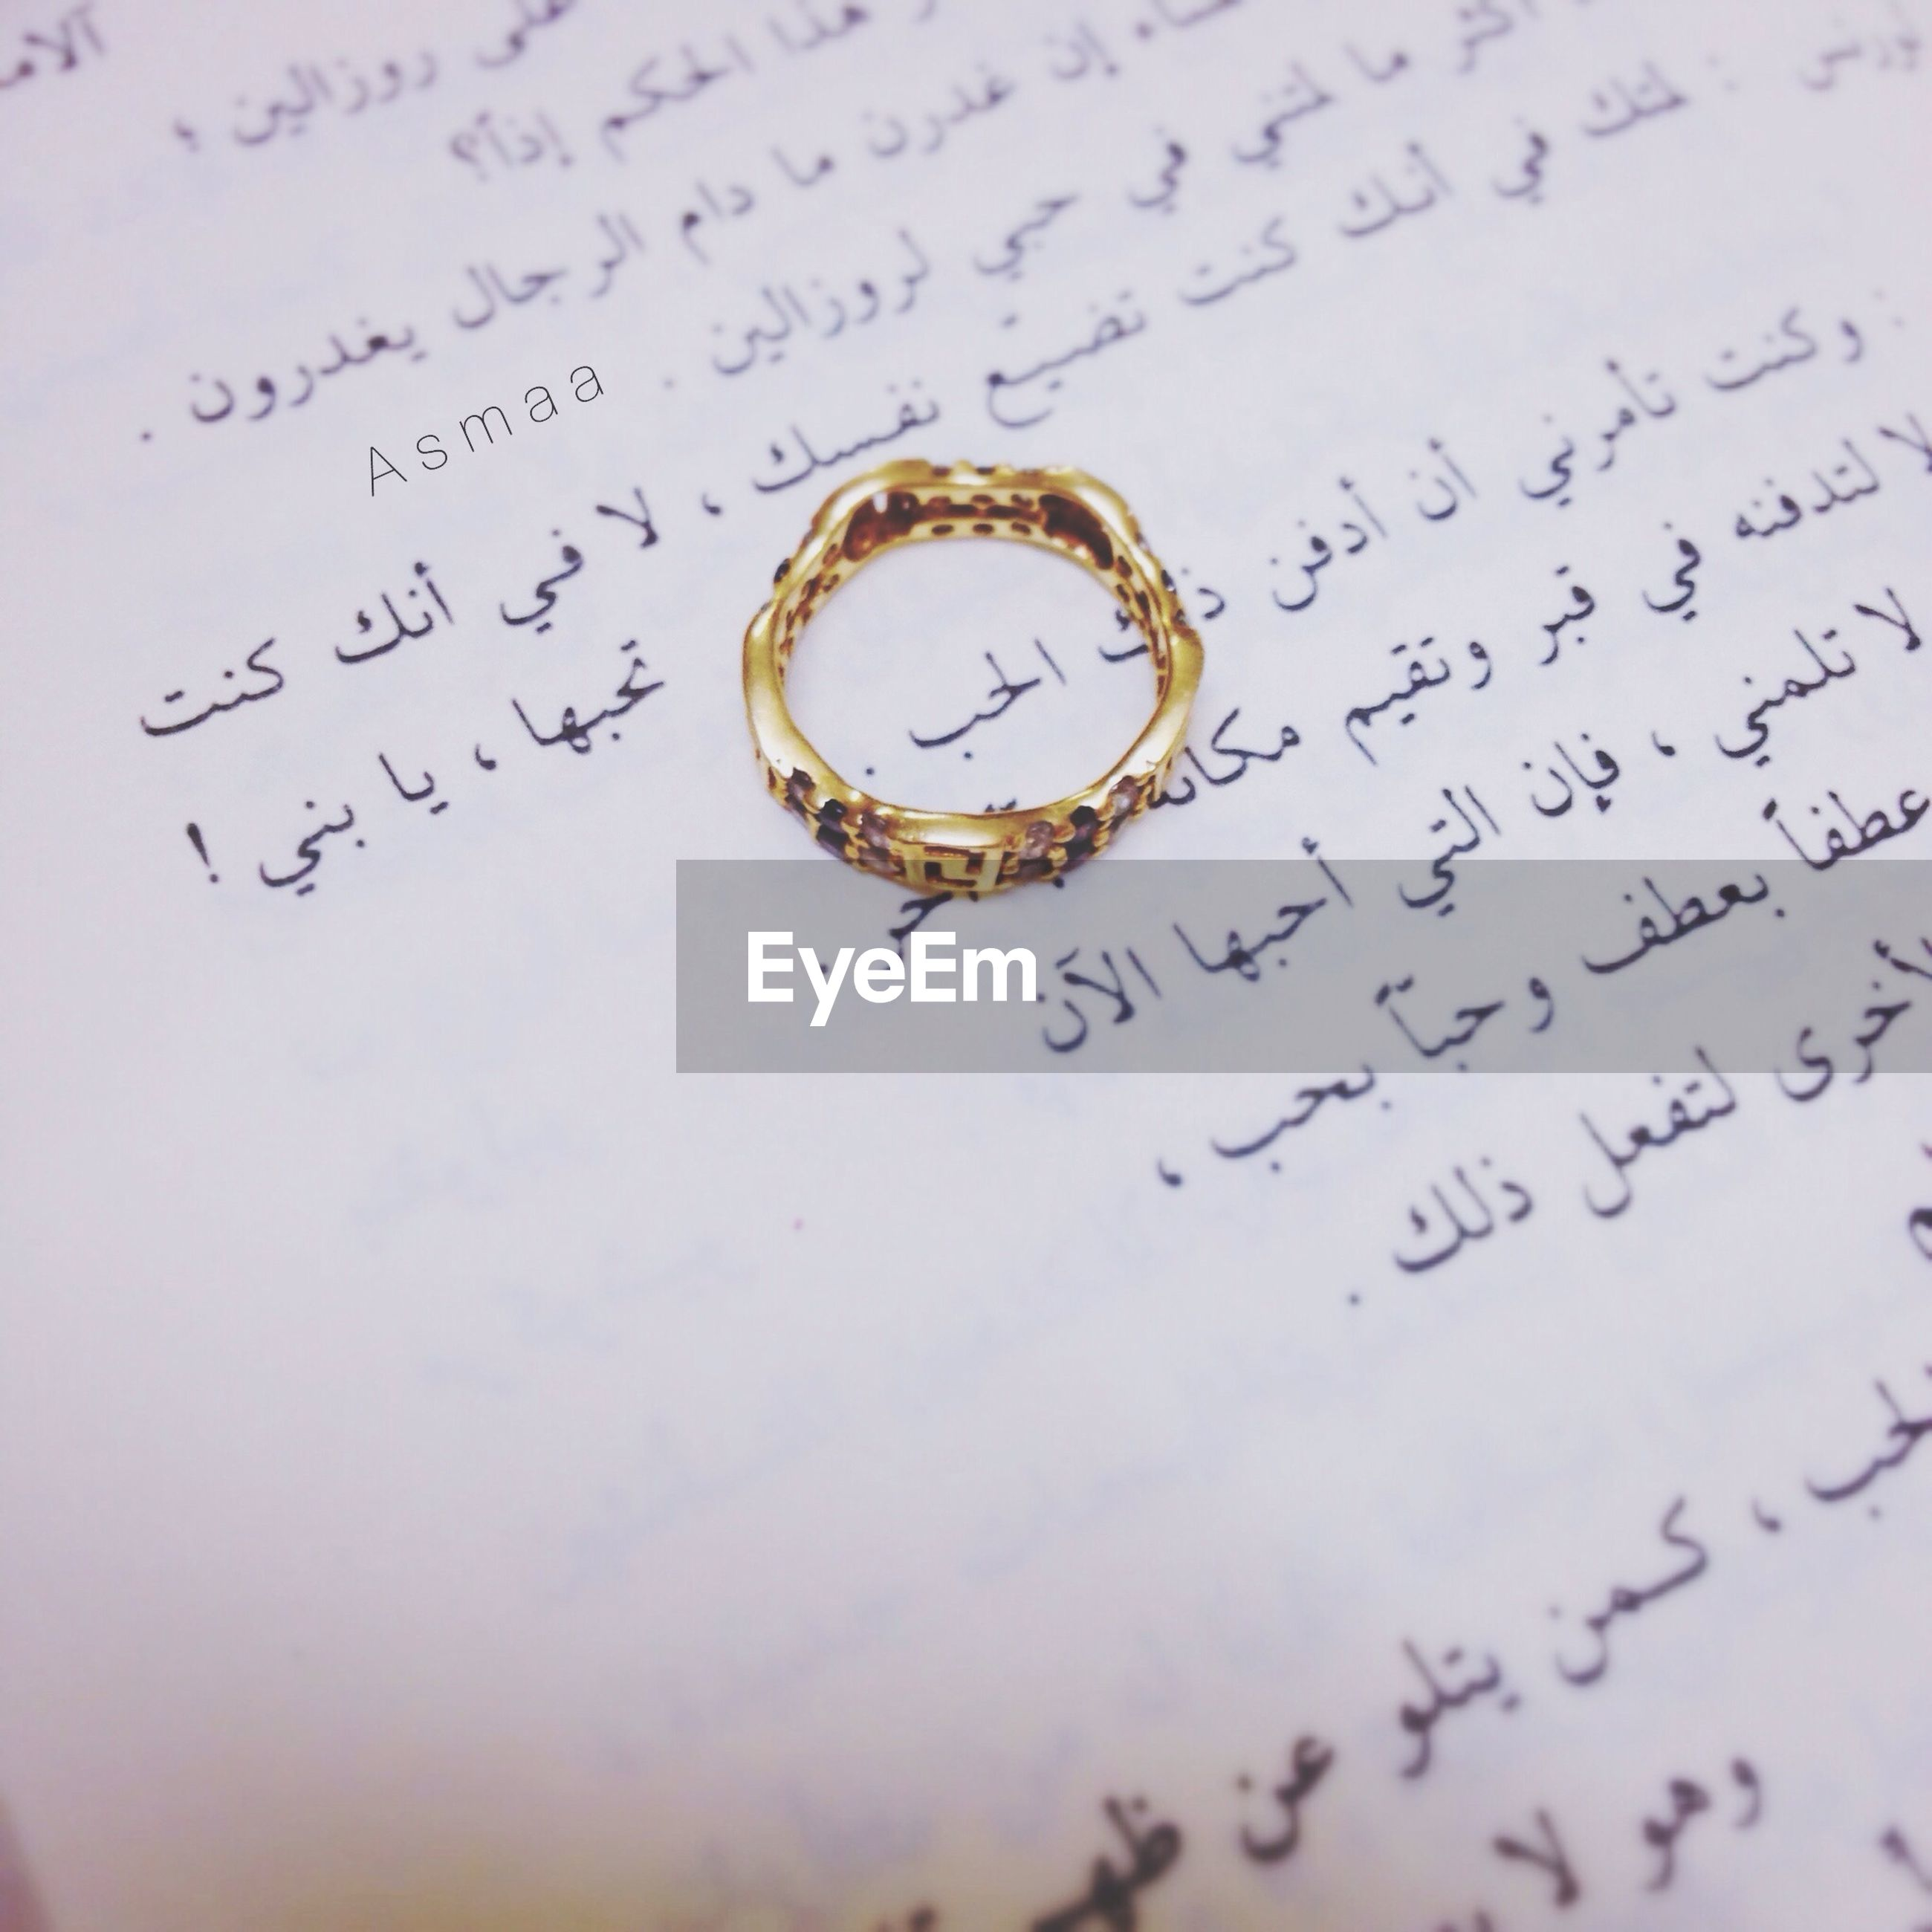 text, western script, communication, indoors, close-up, number, finance, time, currency, selective focus, clock, non-western script, still life, wealth, capital letter, handwriting, no people, coin, table, message